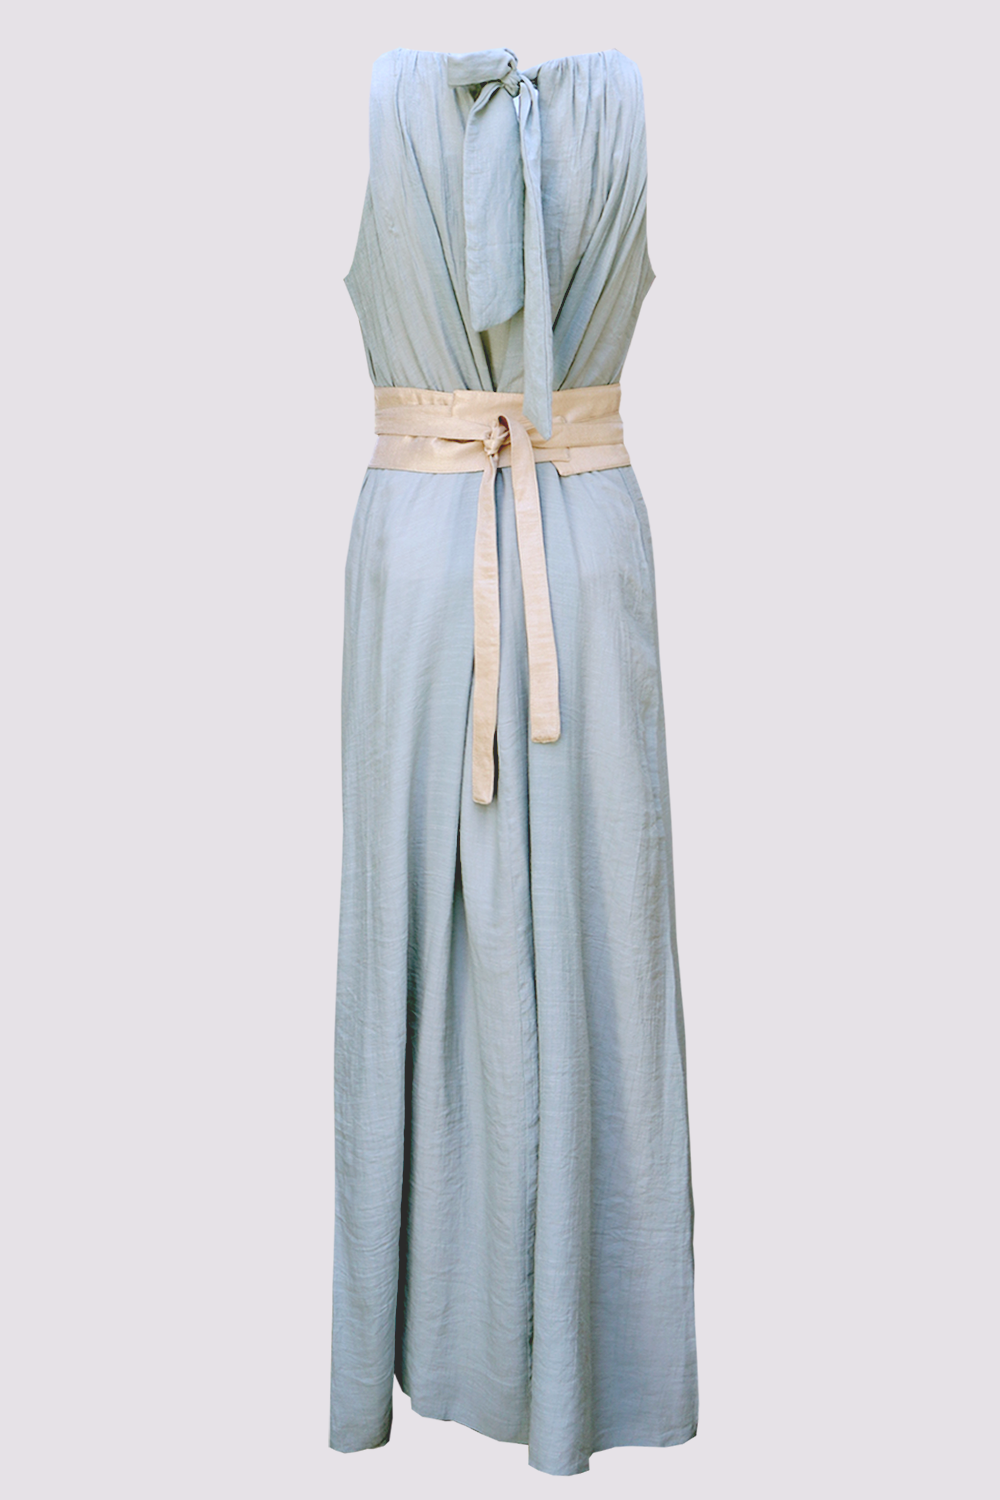 Clay green maxi dress with sash belt by Moutaki